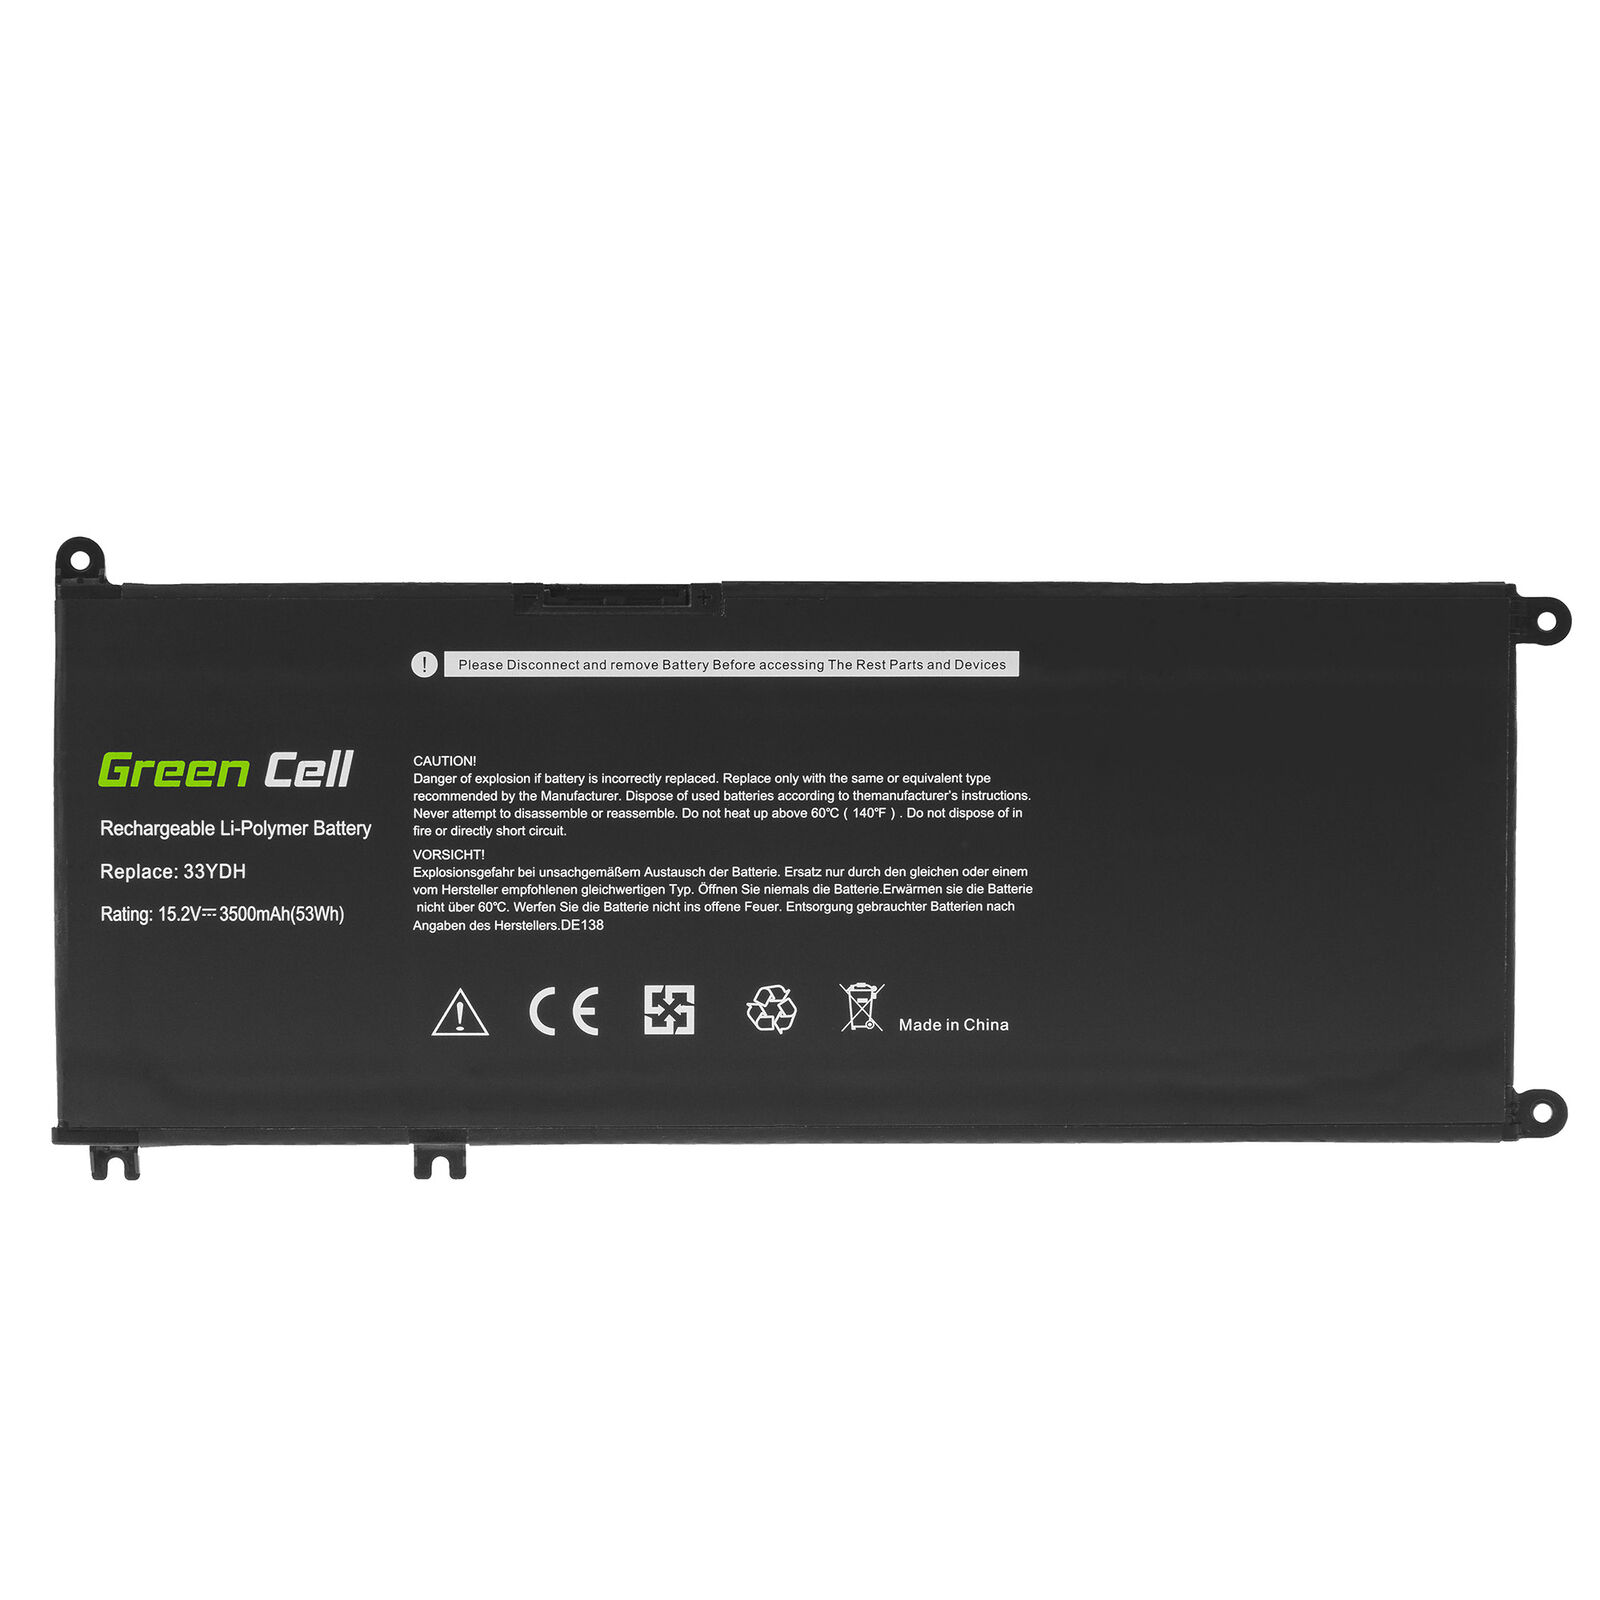 Dell Inspiron 15-7577,15GD 15PD 15PR 17PD 15 7577/17 7773/17 7778 7779 compatible battery